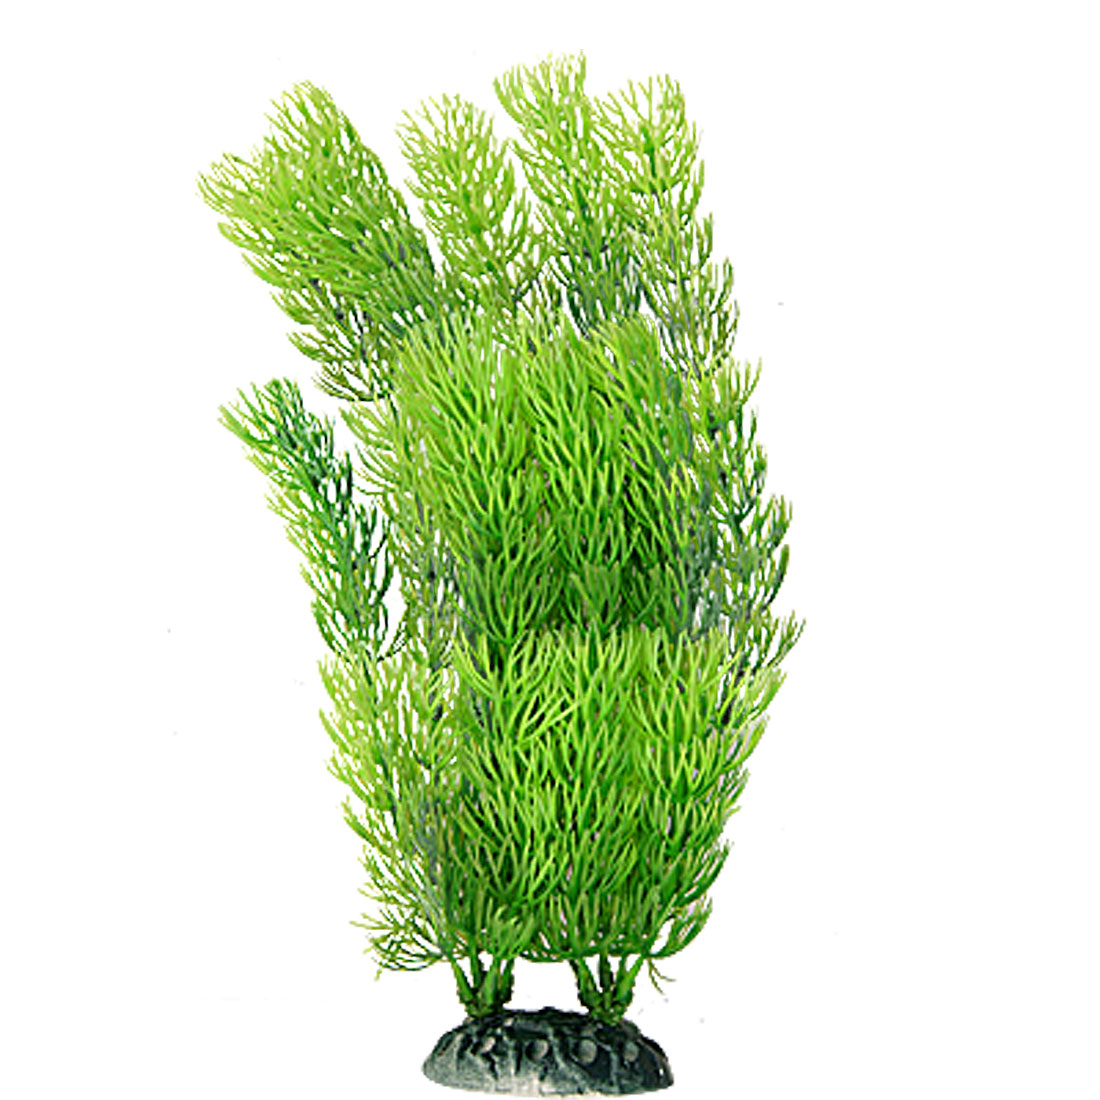 Plastic Green Underwater Grass Ornament for Fish Tank